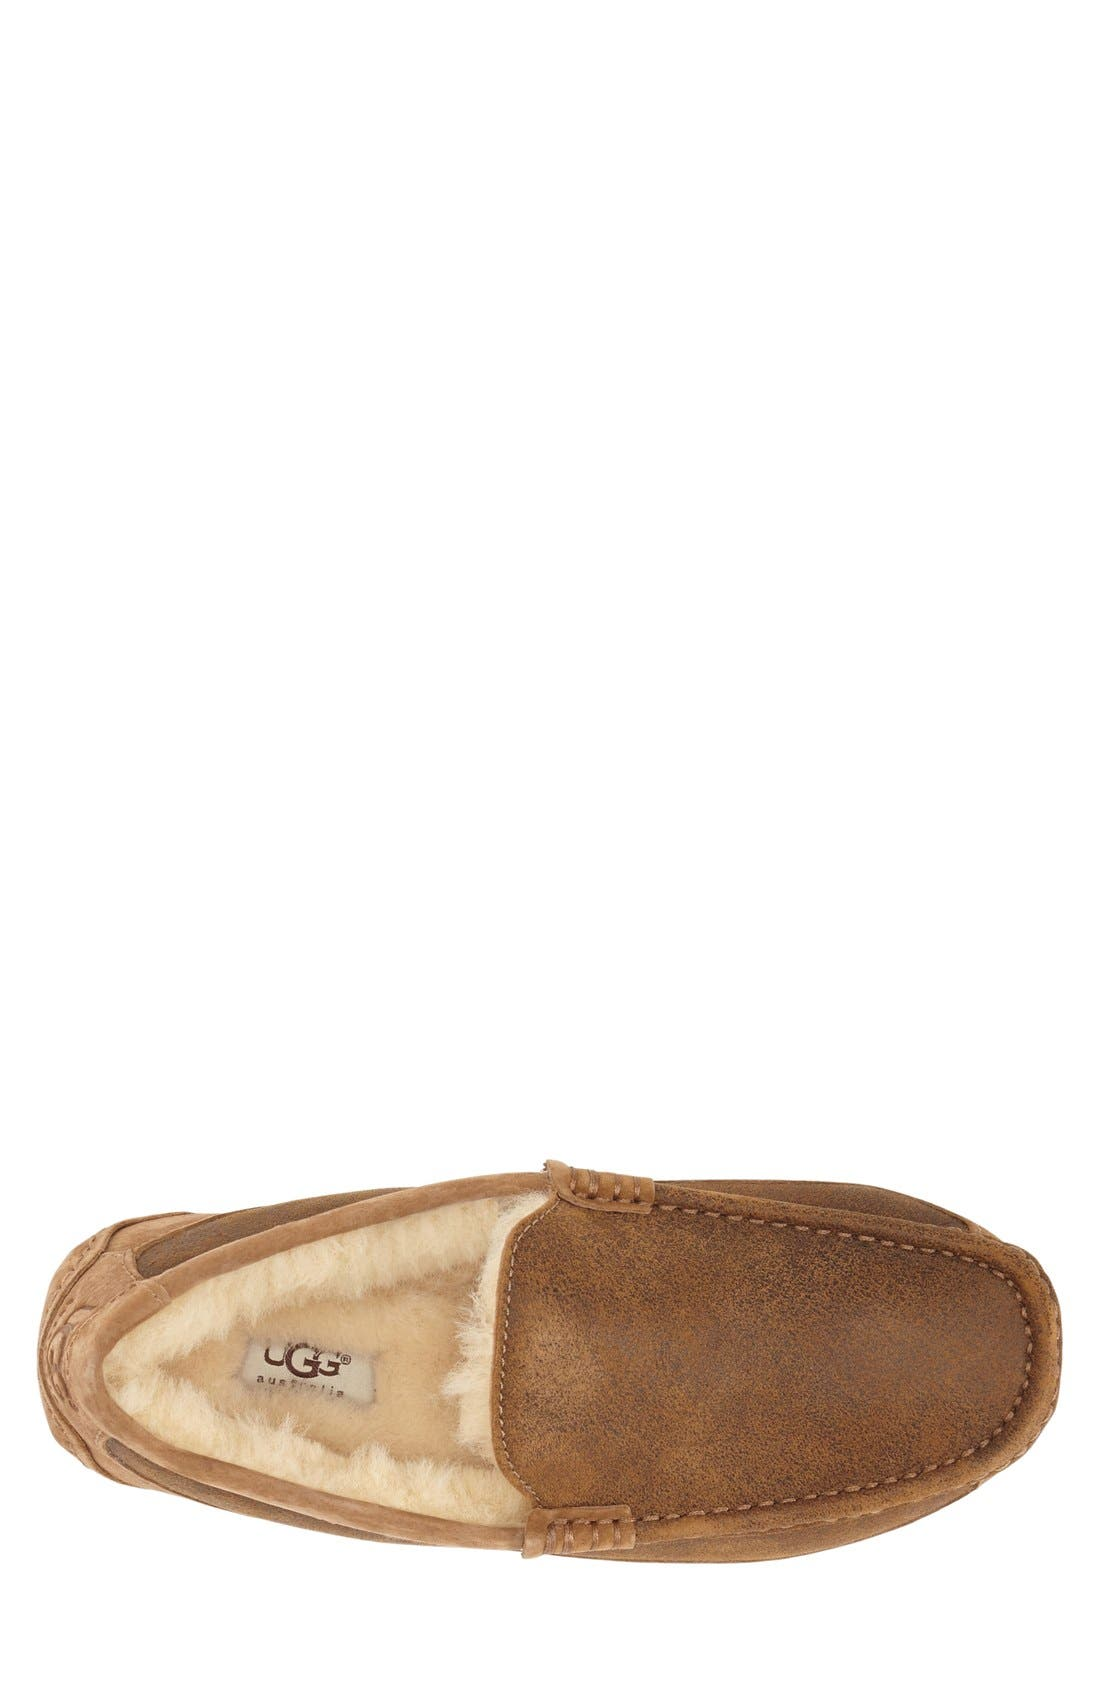 Ascot Bomber Slipper,                             Alternate thumbnail 3, color,                             Bomber Jacket Chestnut